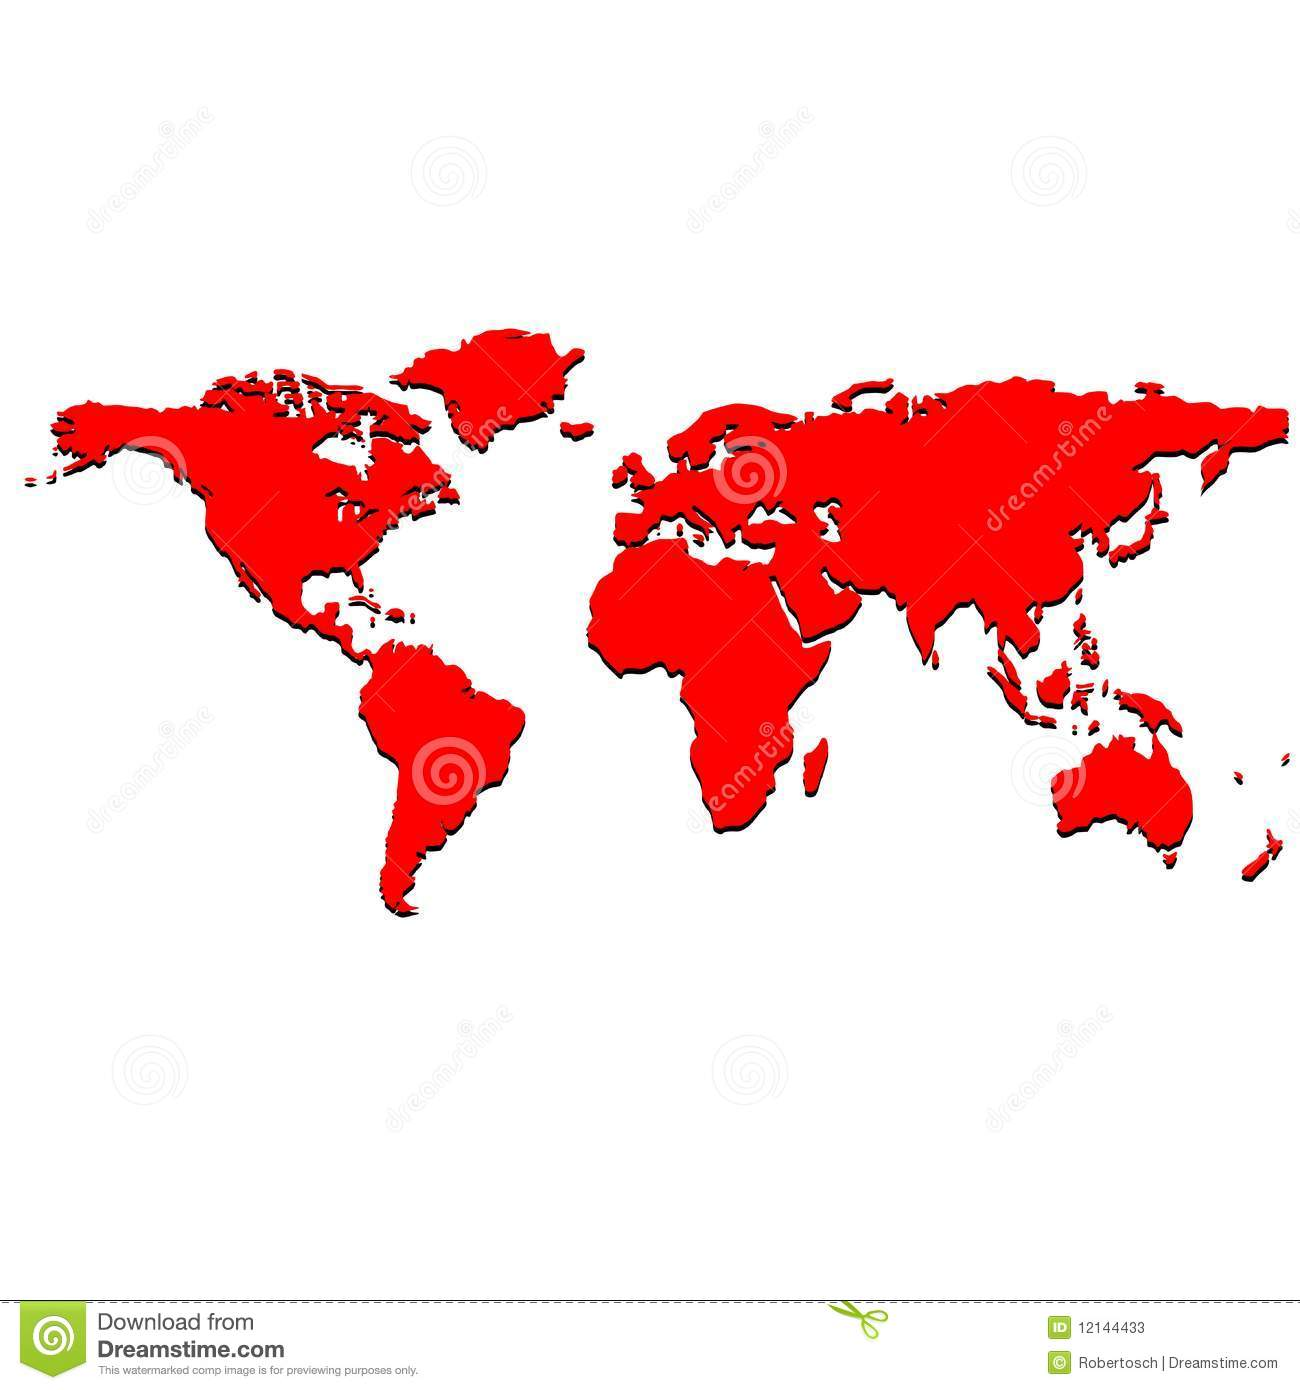 red world map stock vector illustration of background 12144433